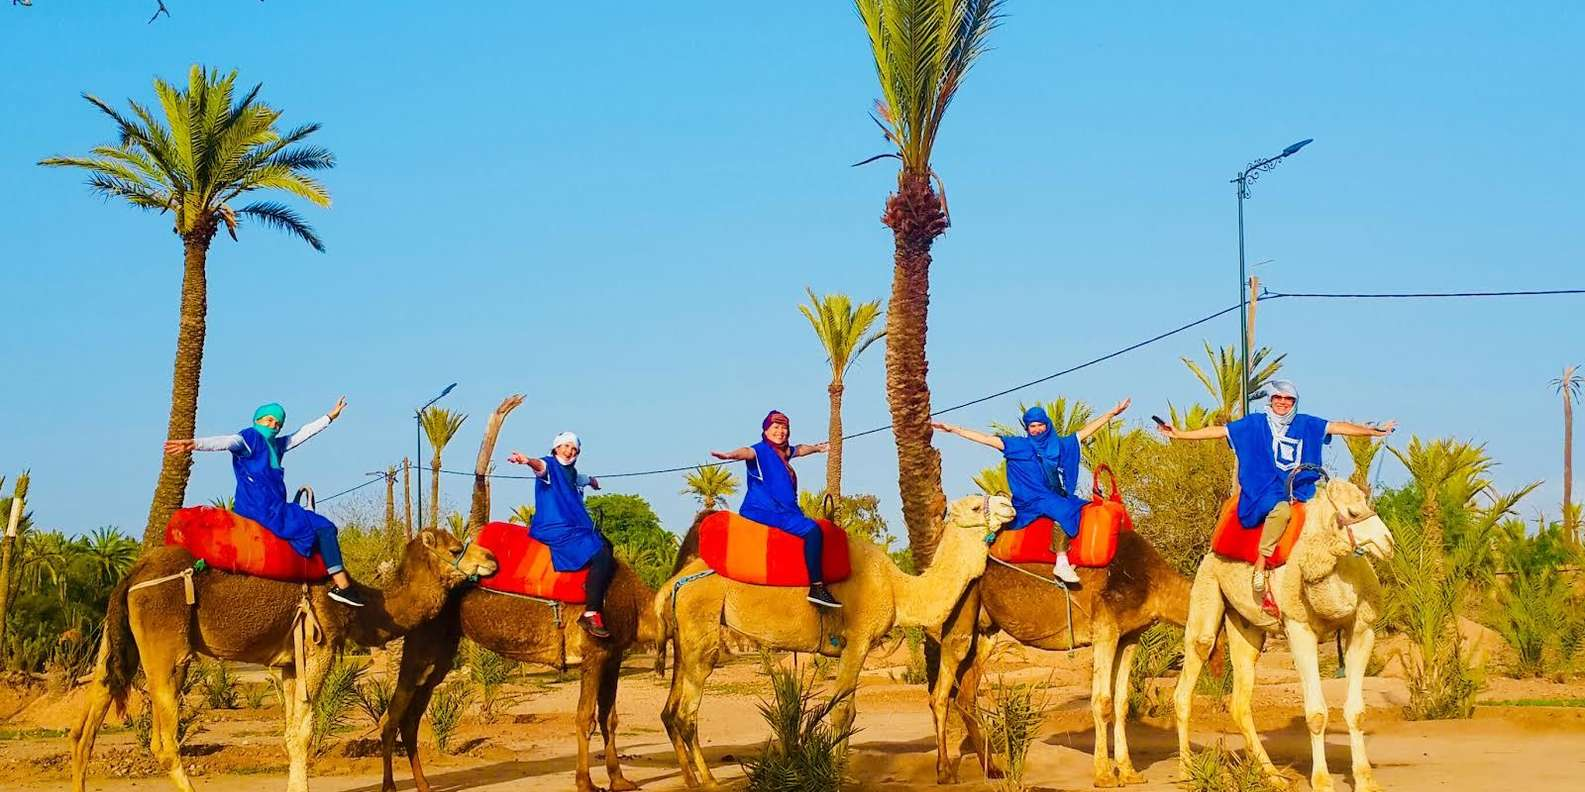 Morocco camel ride tours to explore the palm groves of Marrakech